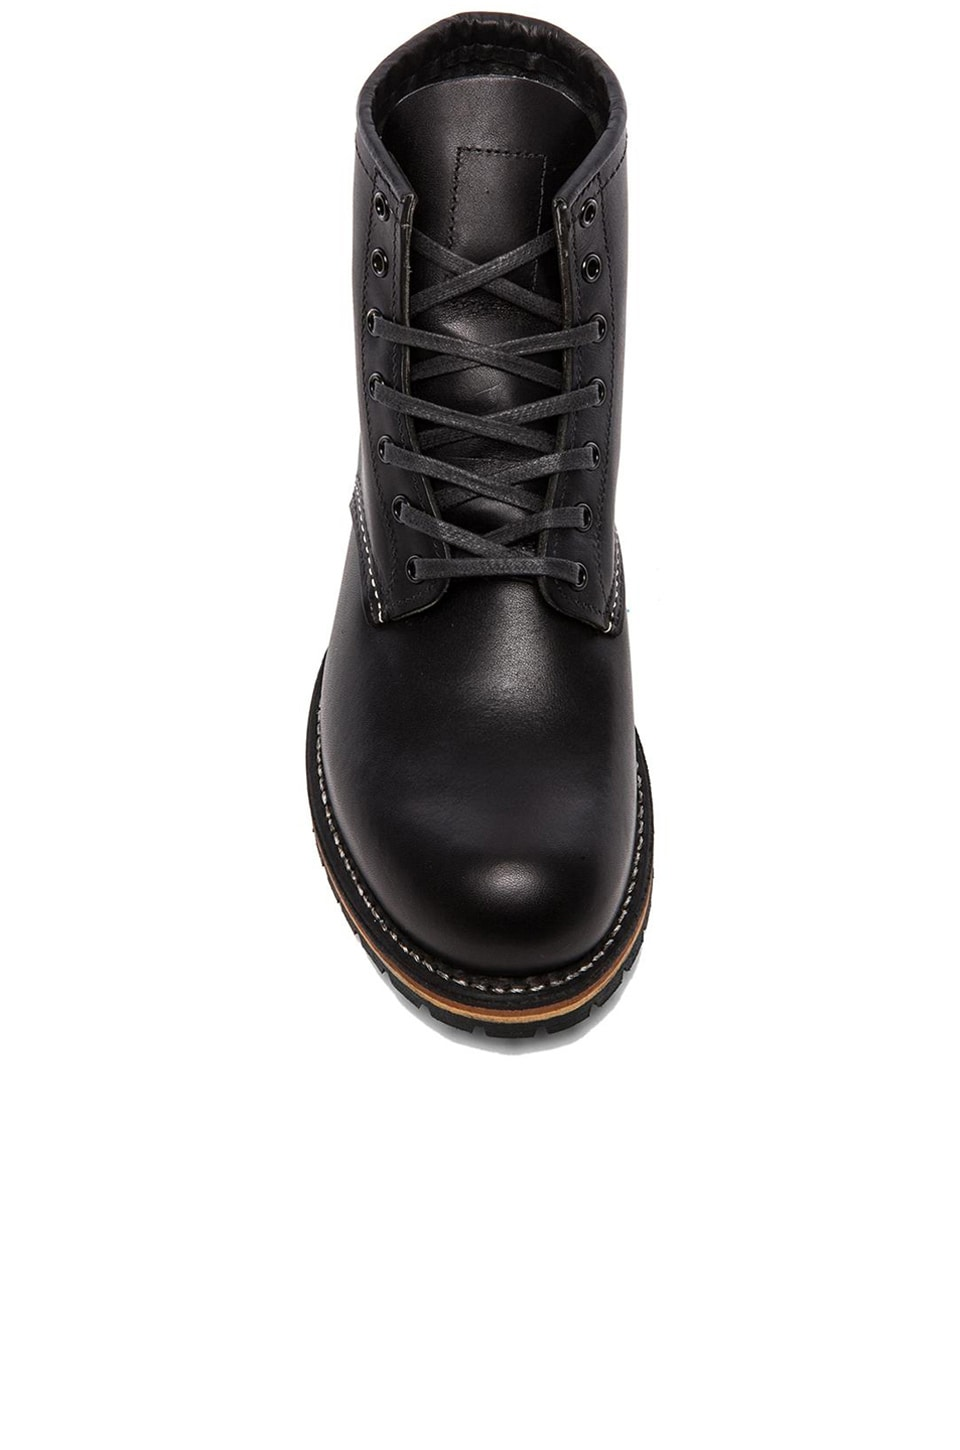 "Red Wing Shoes Beckman 6"" Classic Round in Black Featherstone"